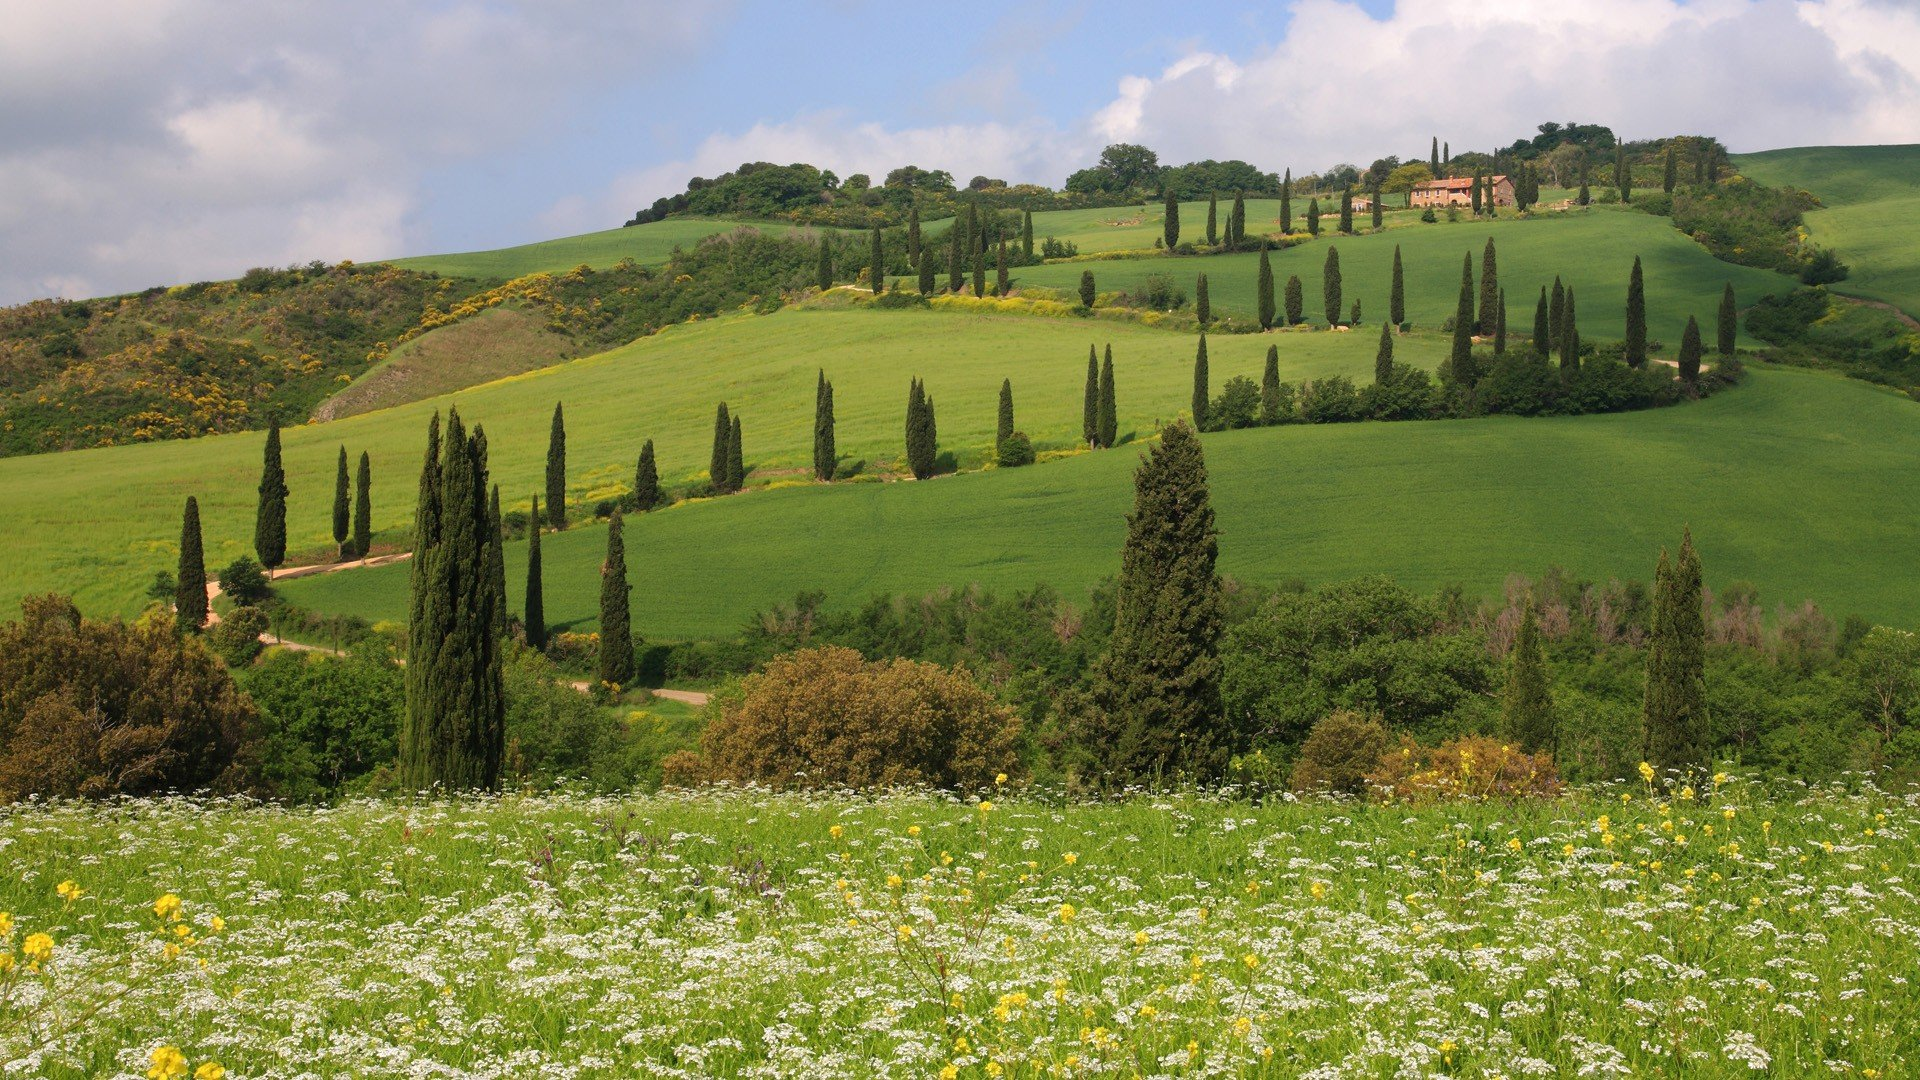 Ooty Hd Wallpapers Landscapes Hills Italy Siena Toscana Tuscany Monticchiello